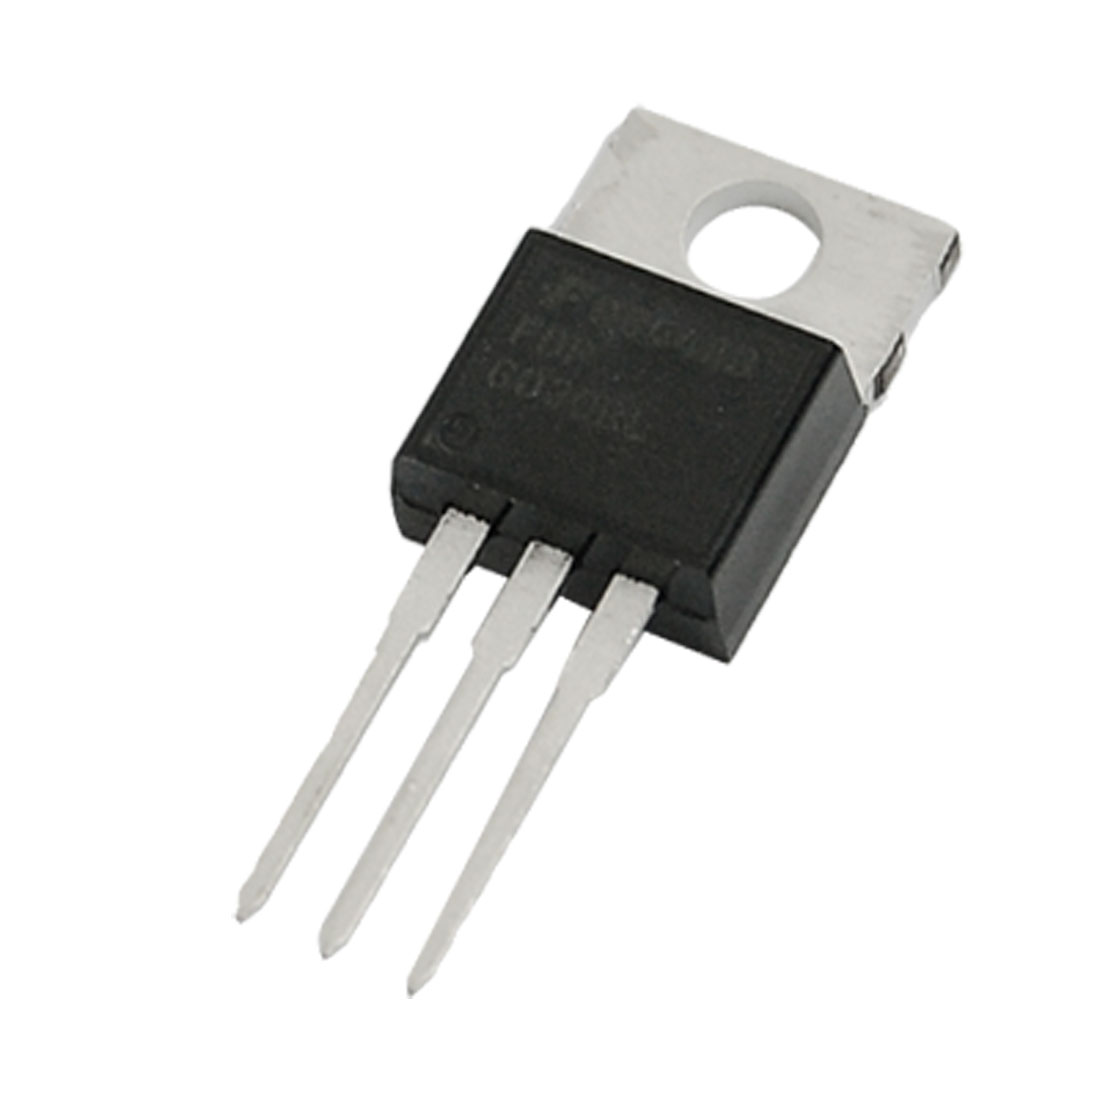 FQP6030BL 30V 60A 3 Pin Terminal Triode Transistor Switch